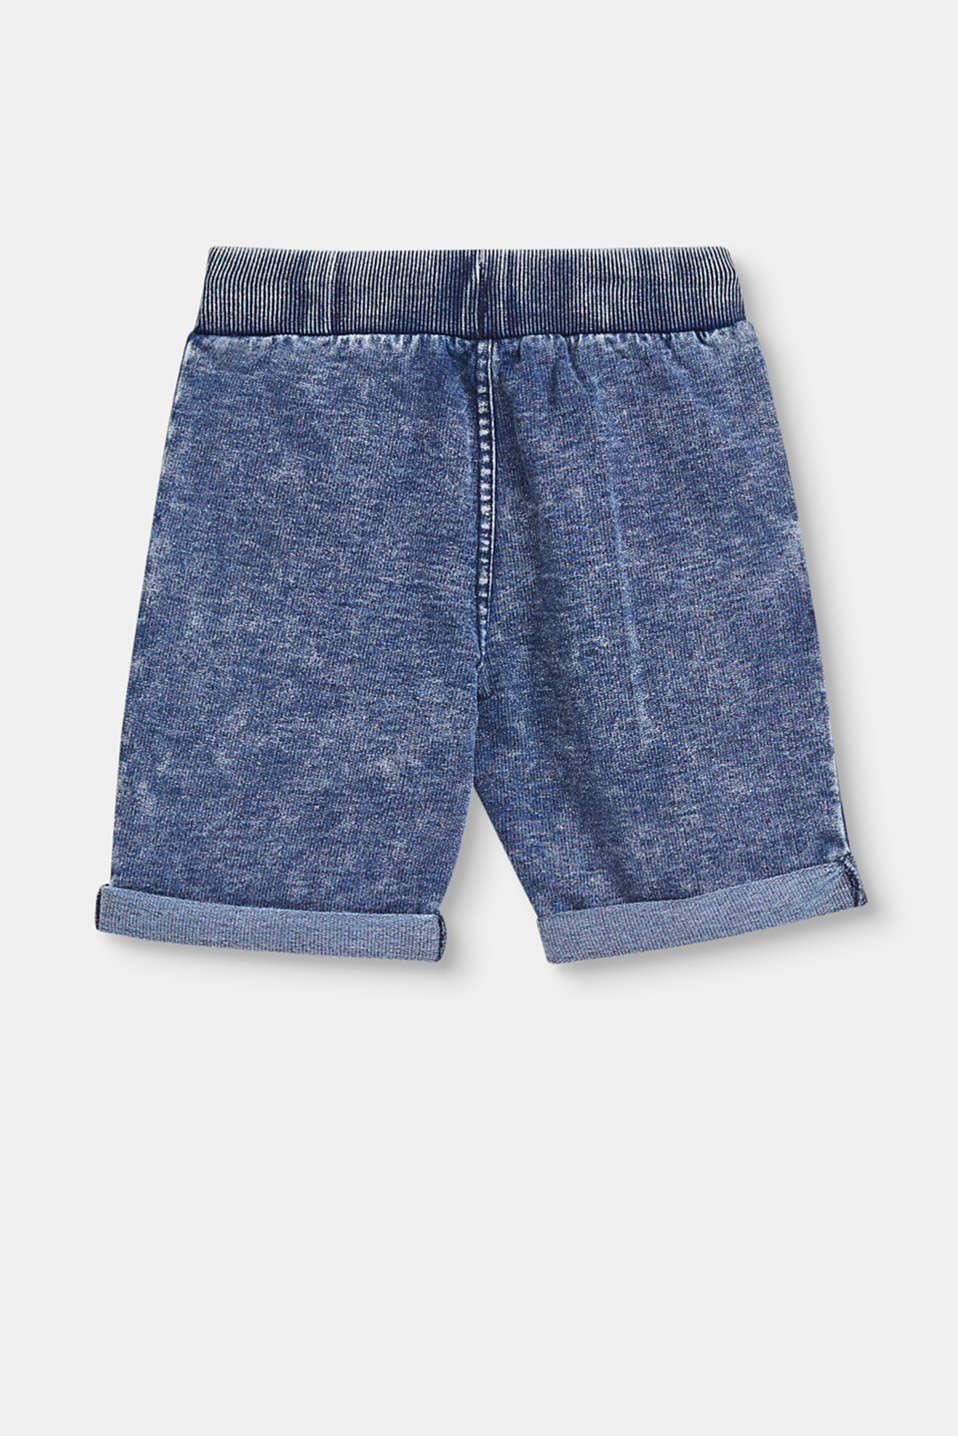 Tracksuit bottoms with an authentic indigo dye